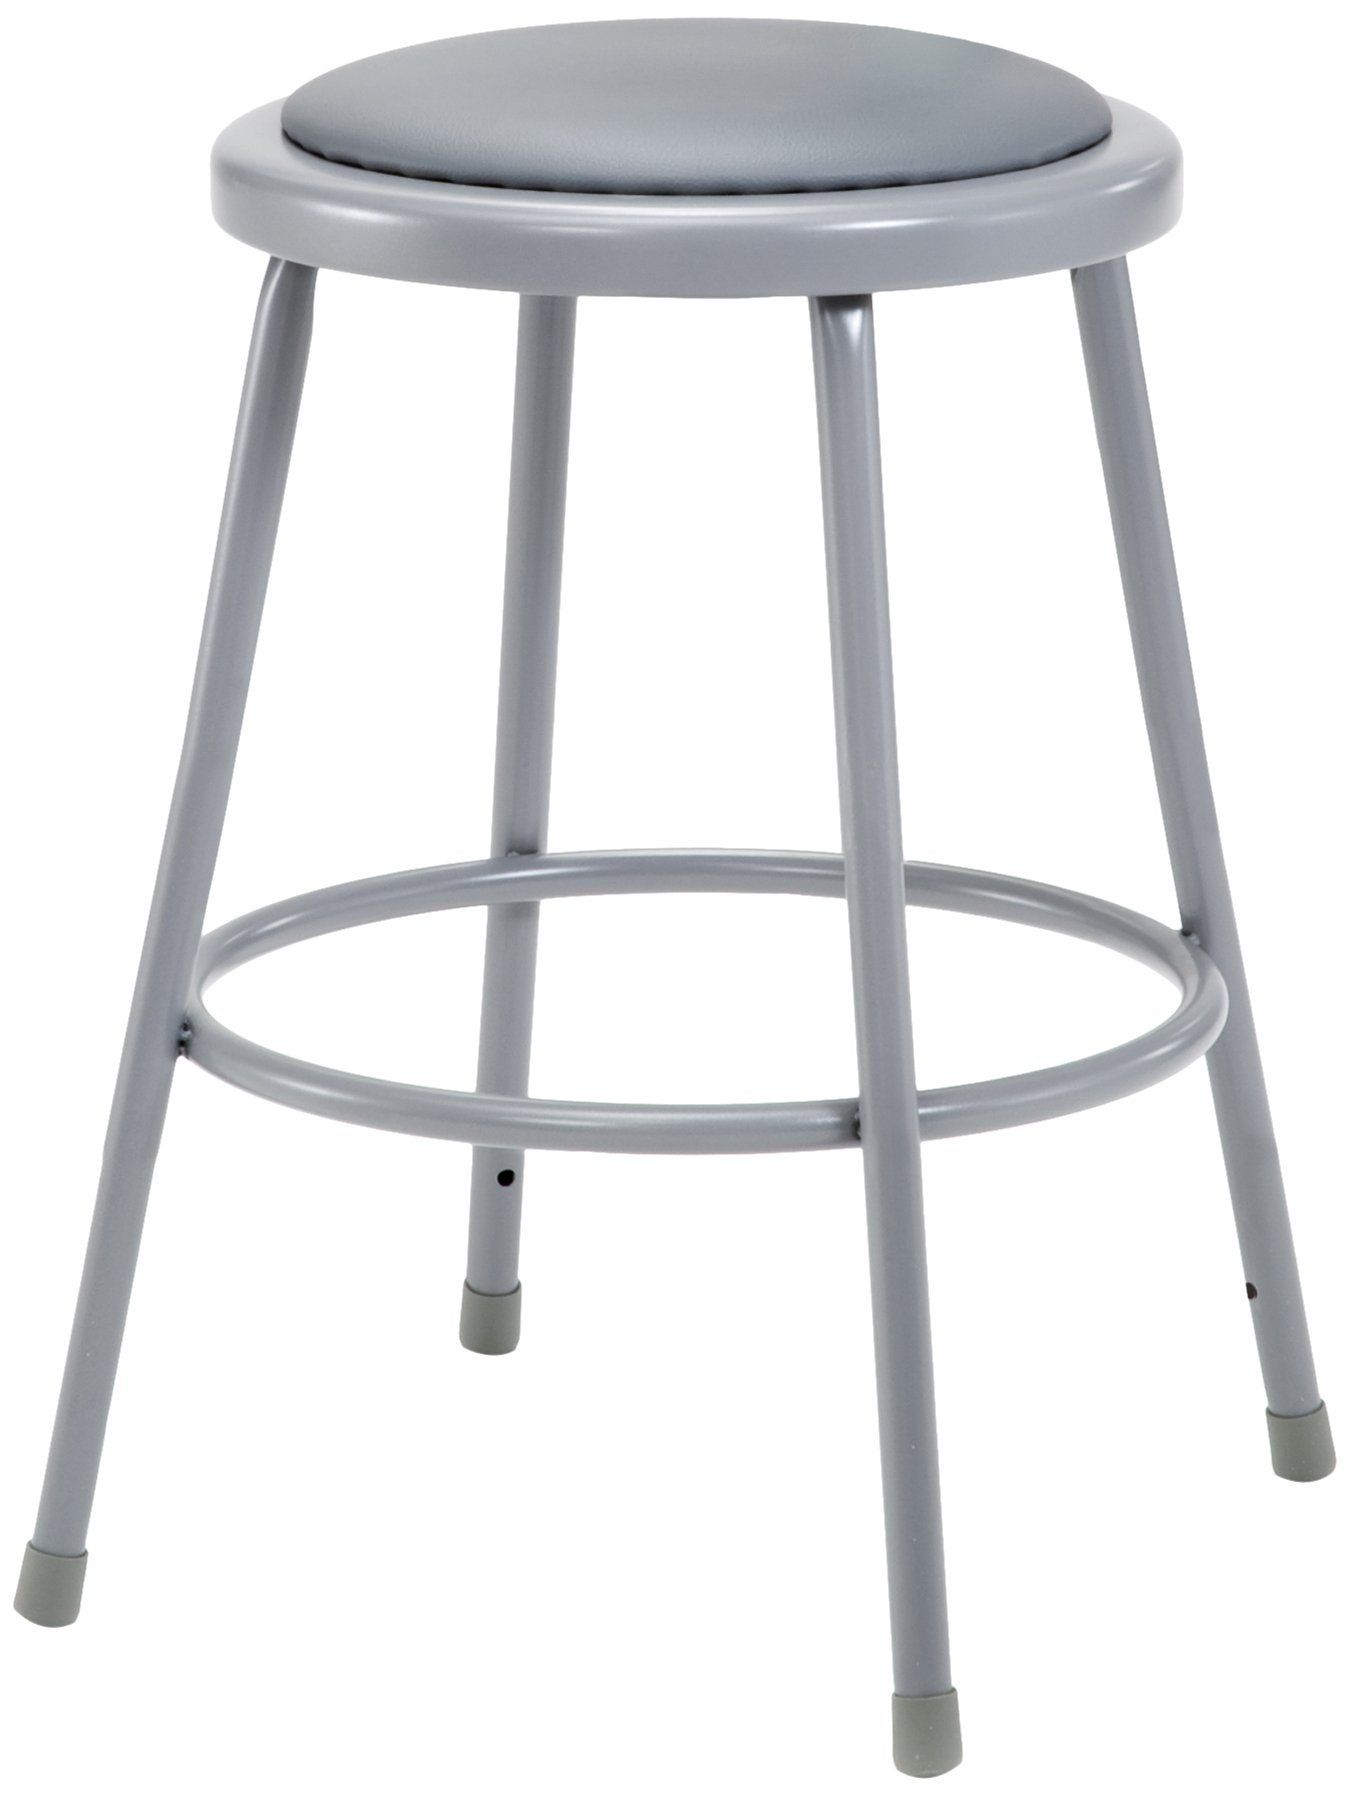 National Public Seating 6424-CN Steel Stool with 24'' Vinyl Upholstered Seat, Grey (Pack of 4)